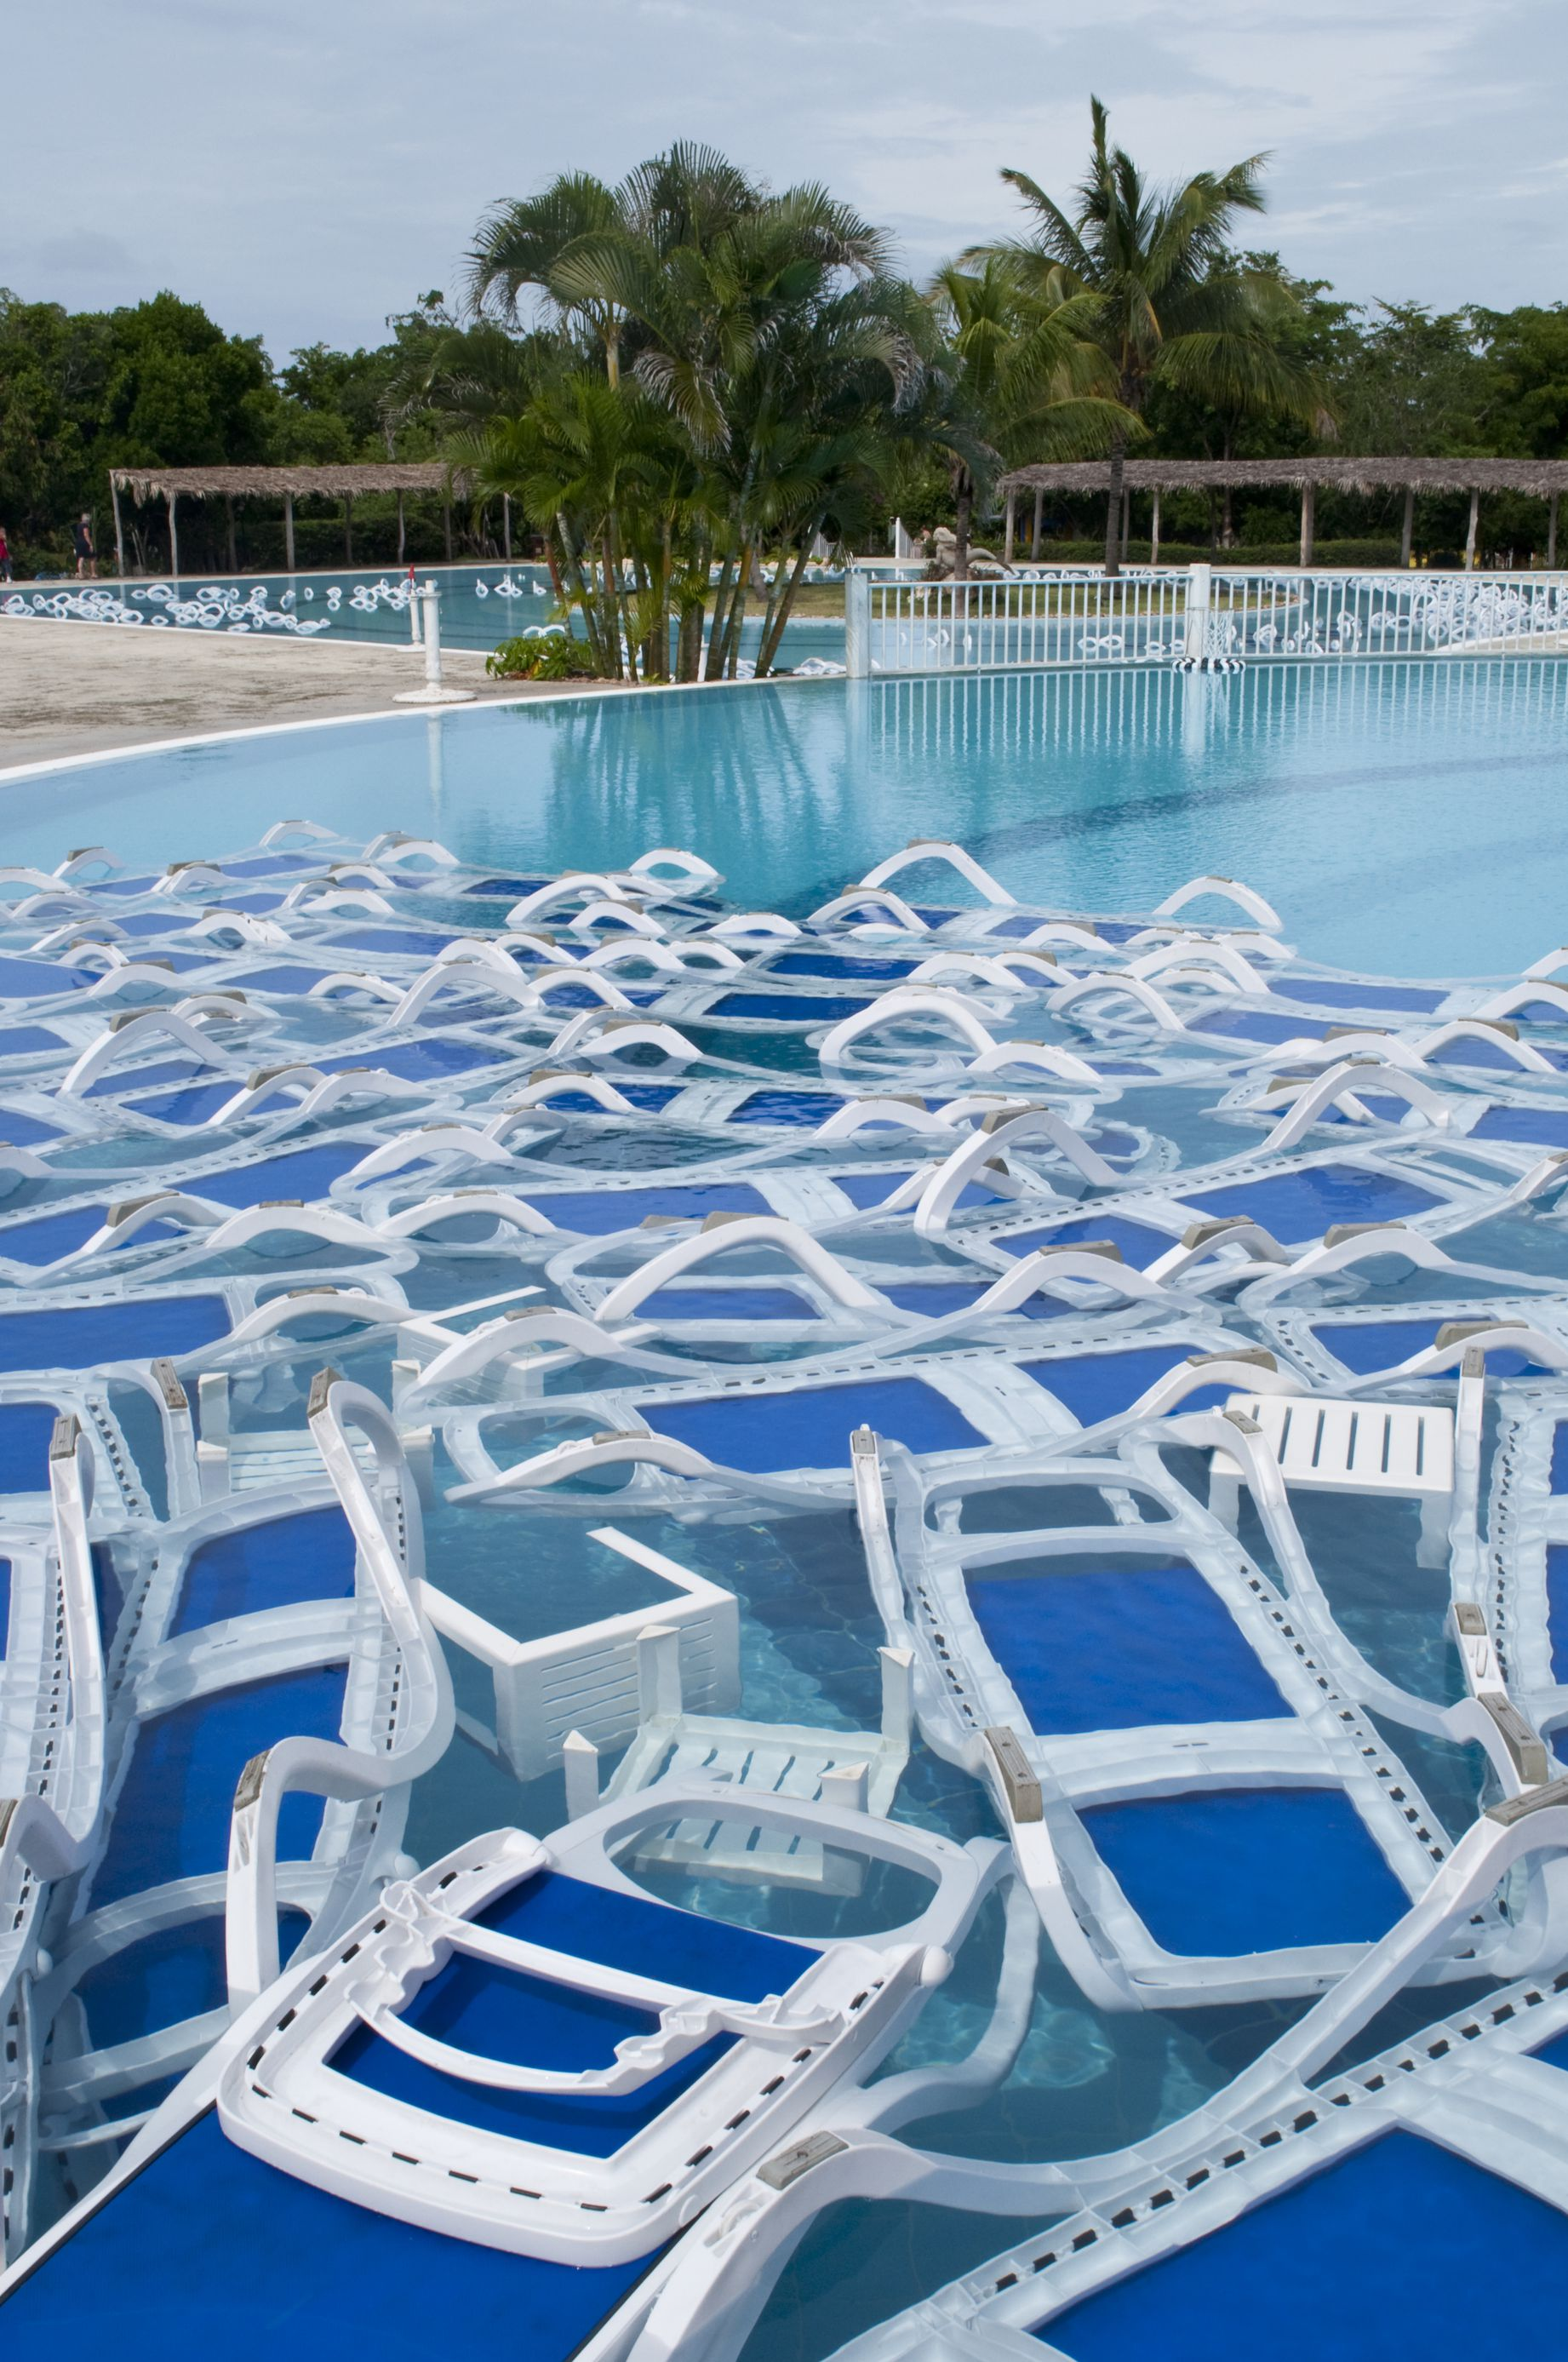 Furniture in pool for hurricane preperation